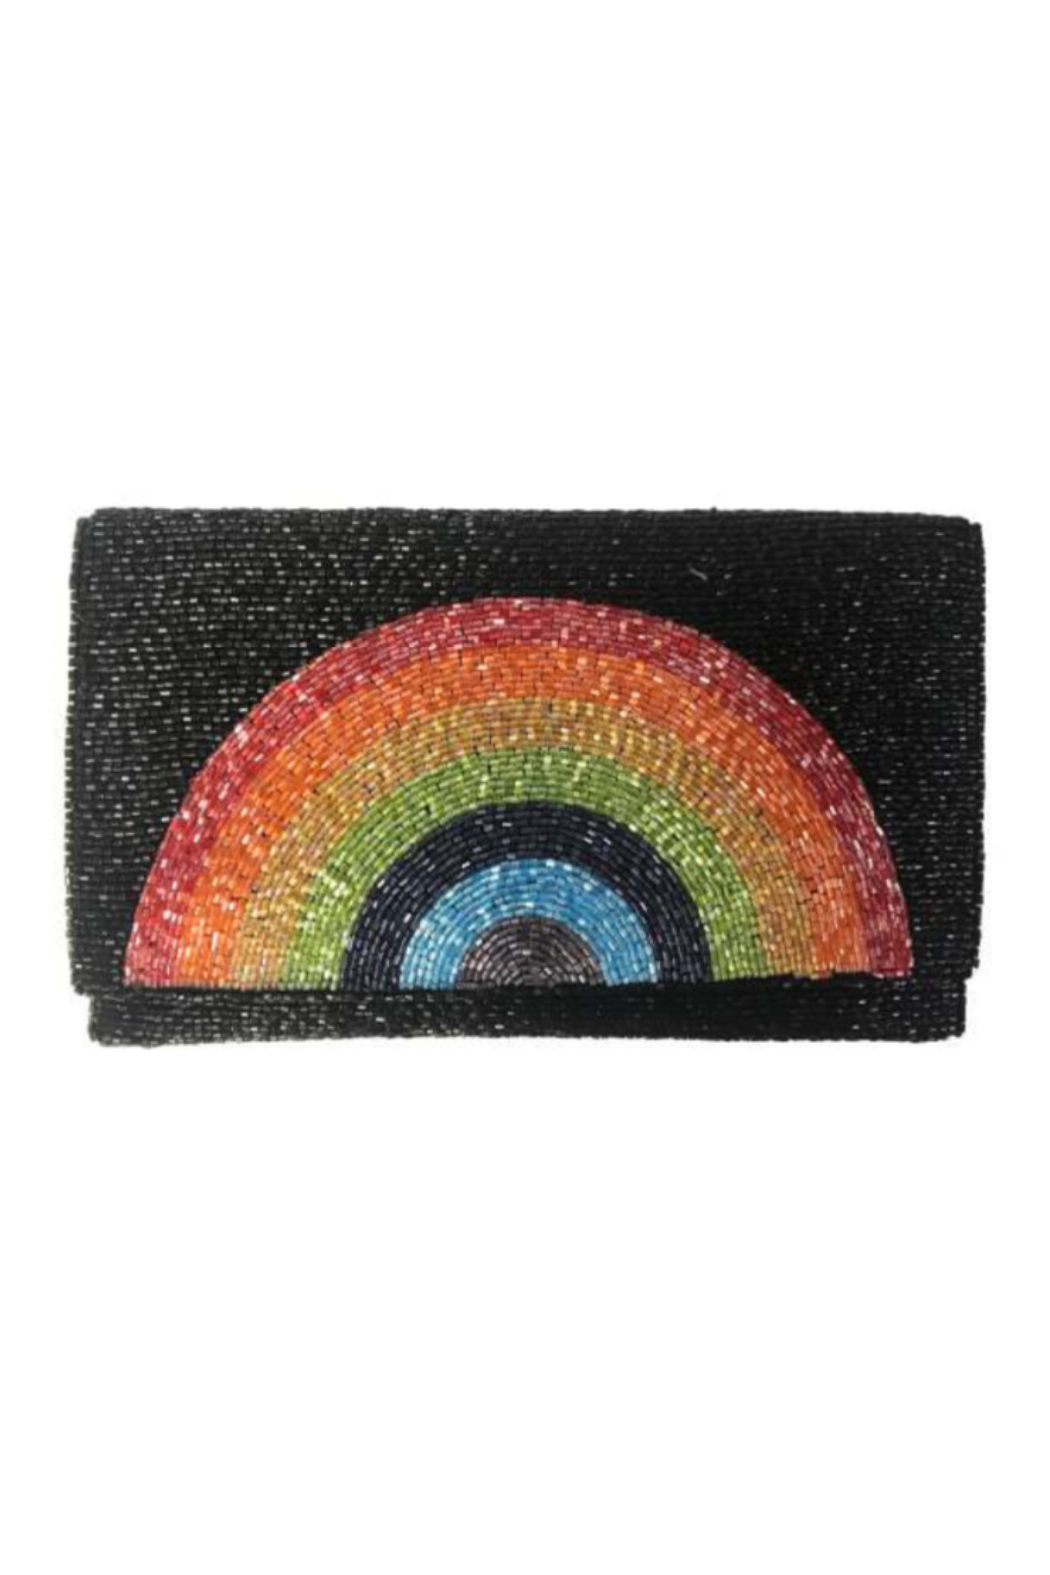 Ricki Designs Rainbow Beaded Clutch - Front Cropped Image